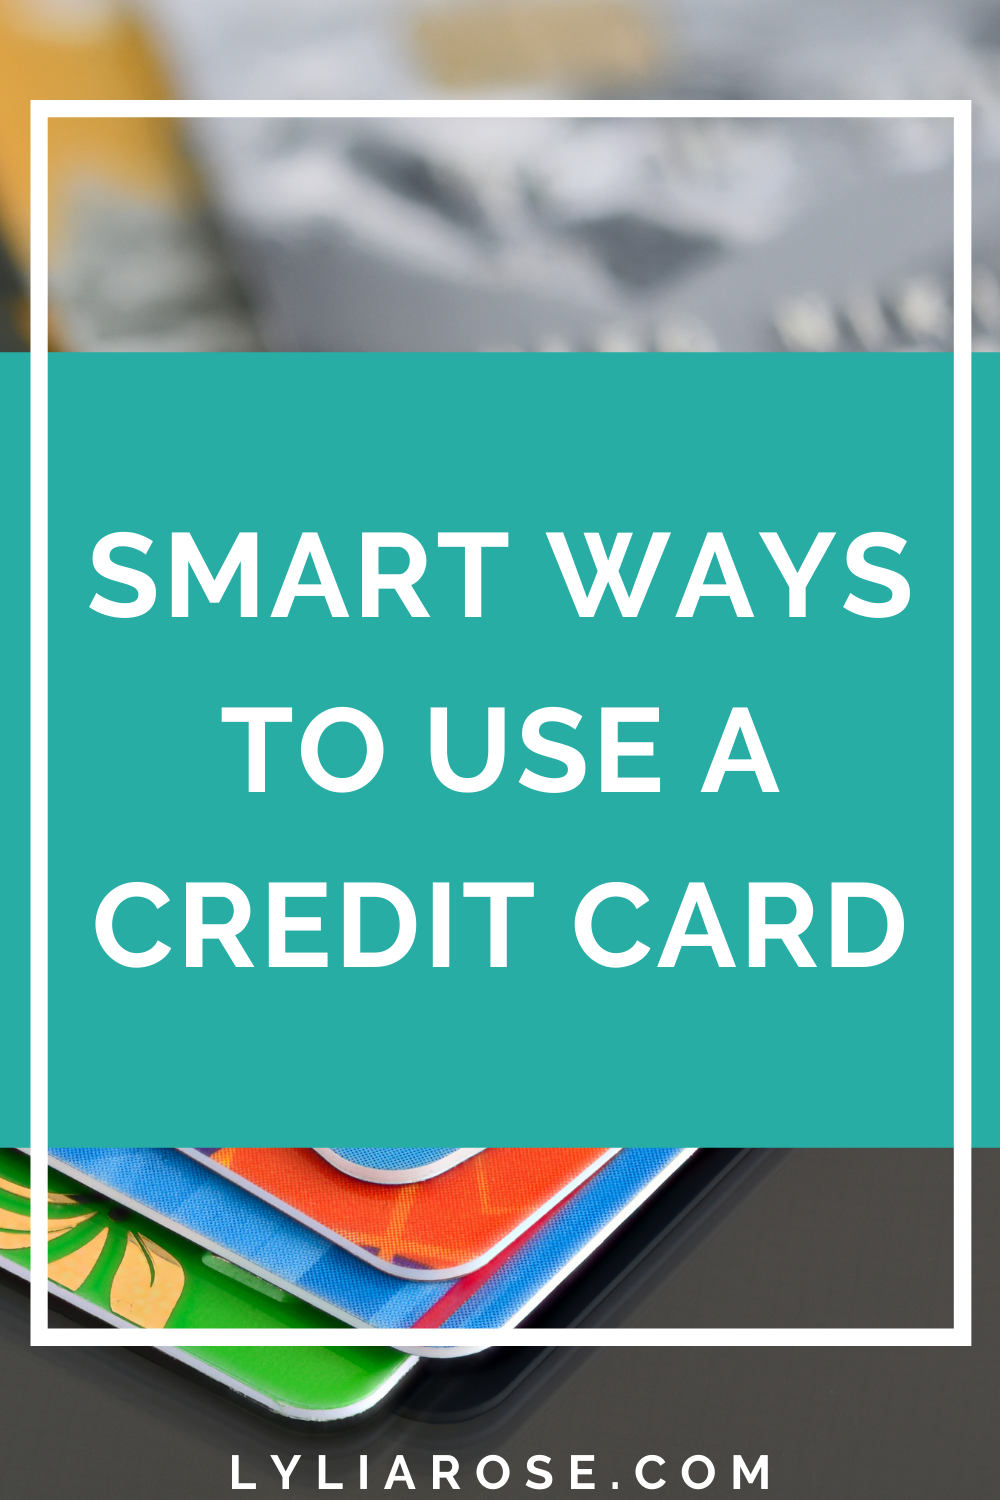 Smart ways to use a credit card